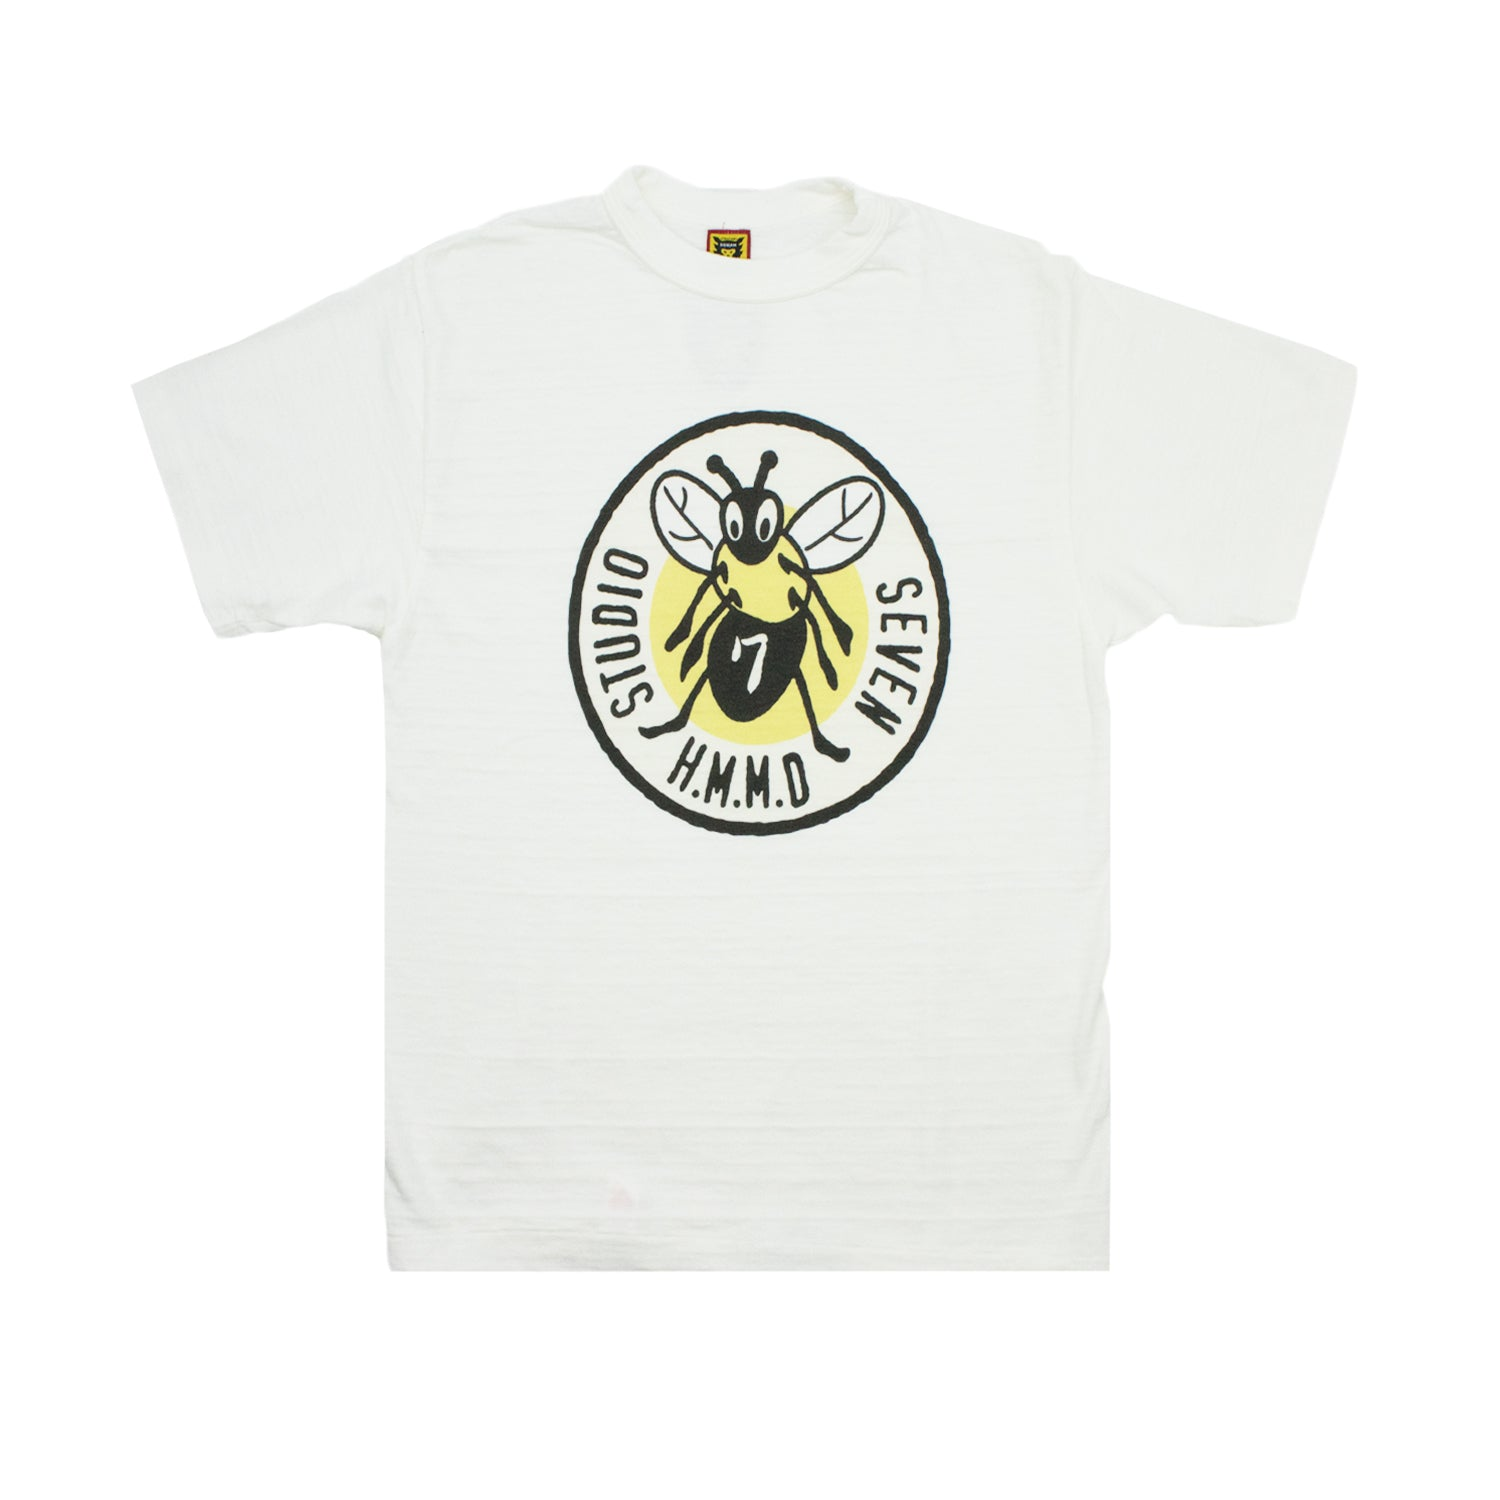 BEE HM7 T-SHIRT